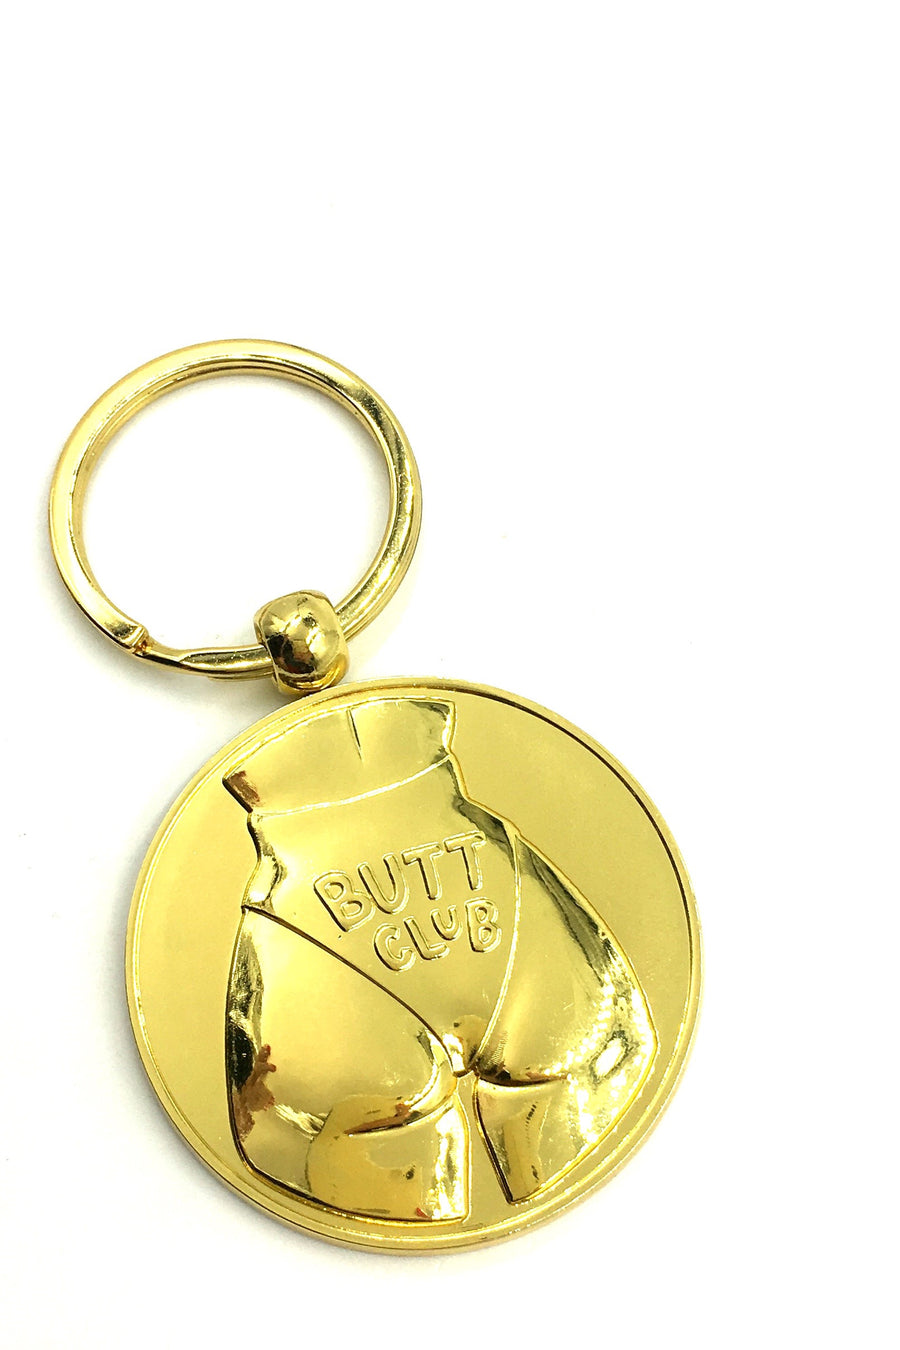 BUTT CLUB Keychain